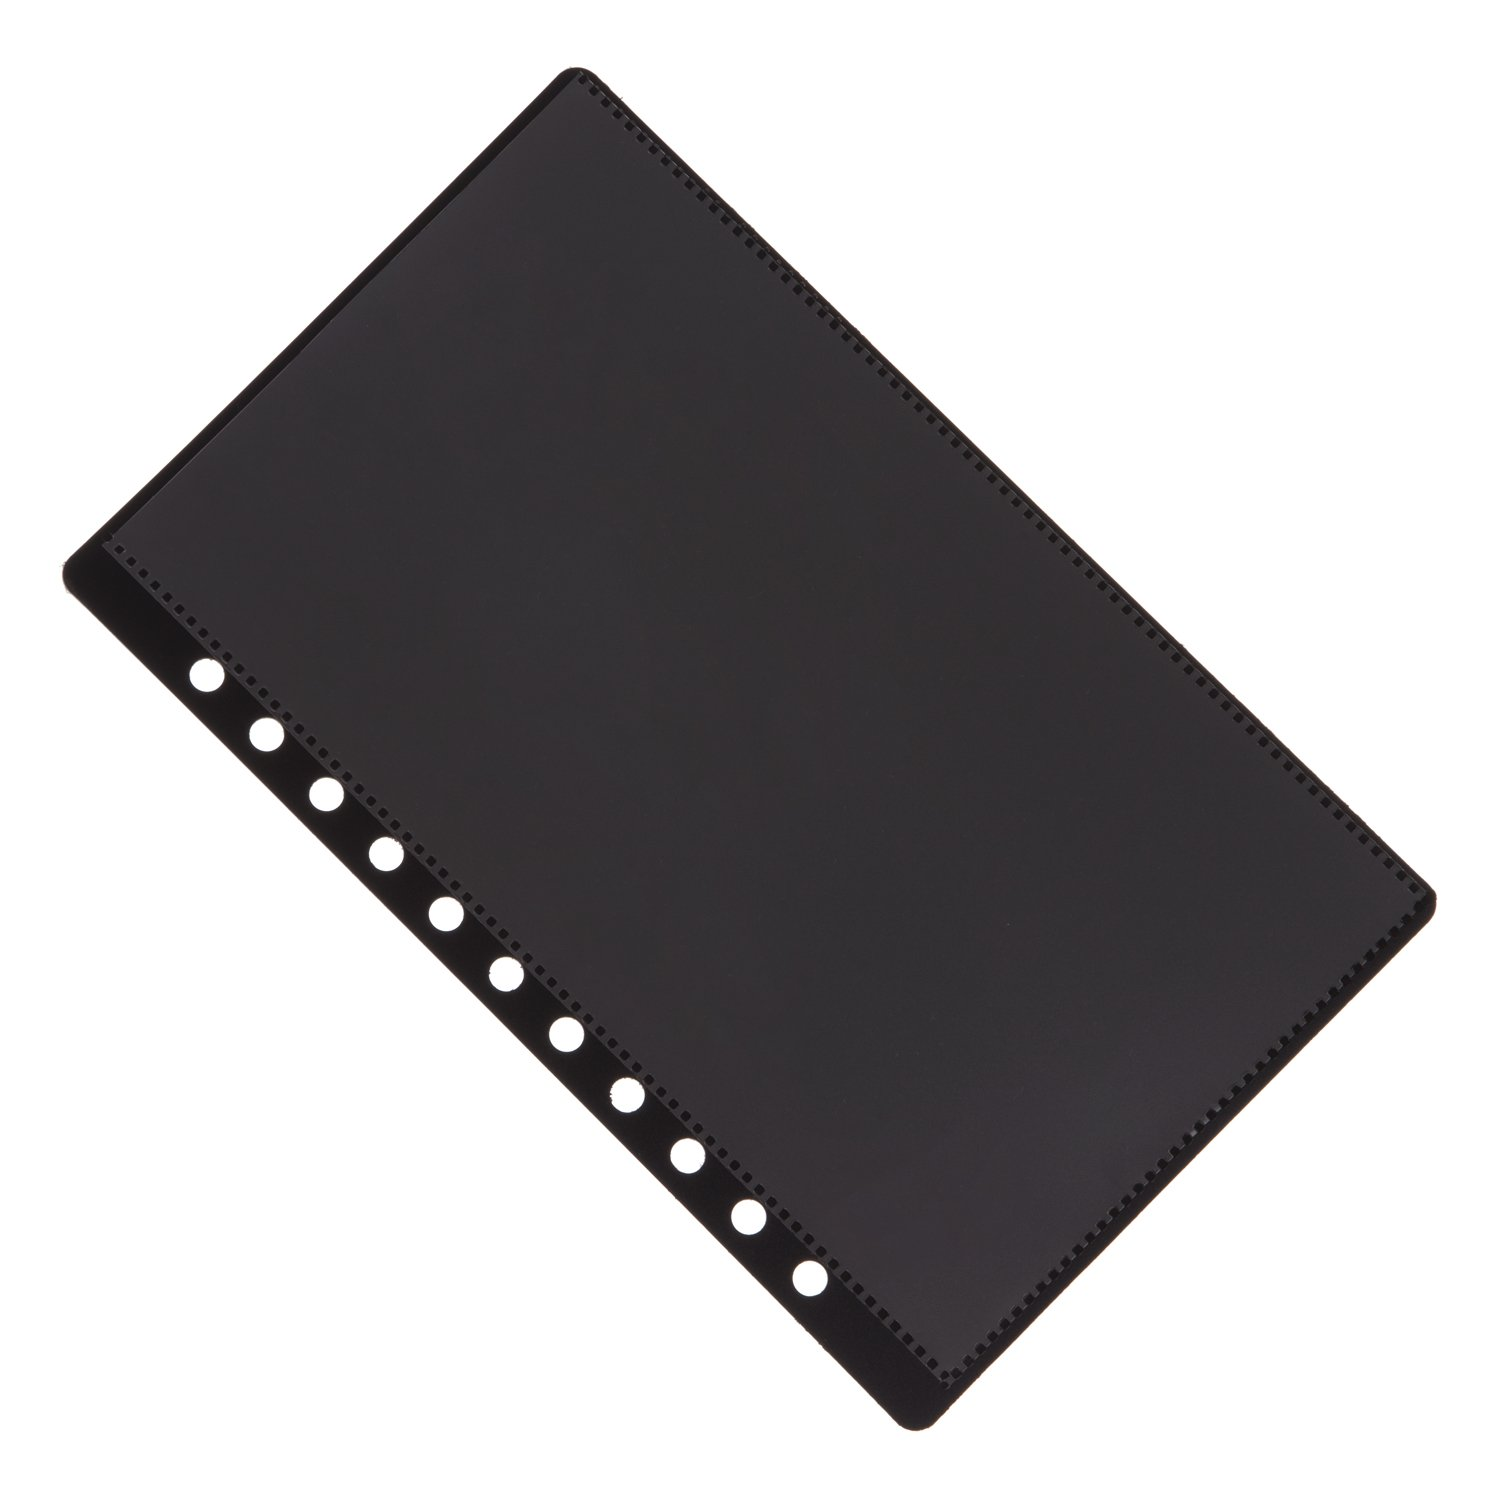 11 Hole Aerobind QRH Cover - 6.92 Inch Wide Black Rigid Pilot Checklist Cover With Attached Pockets - 100 Per Pack